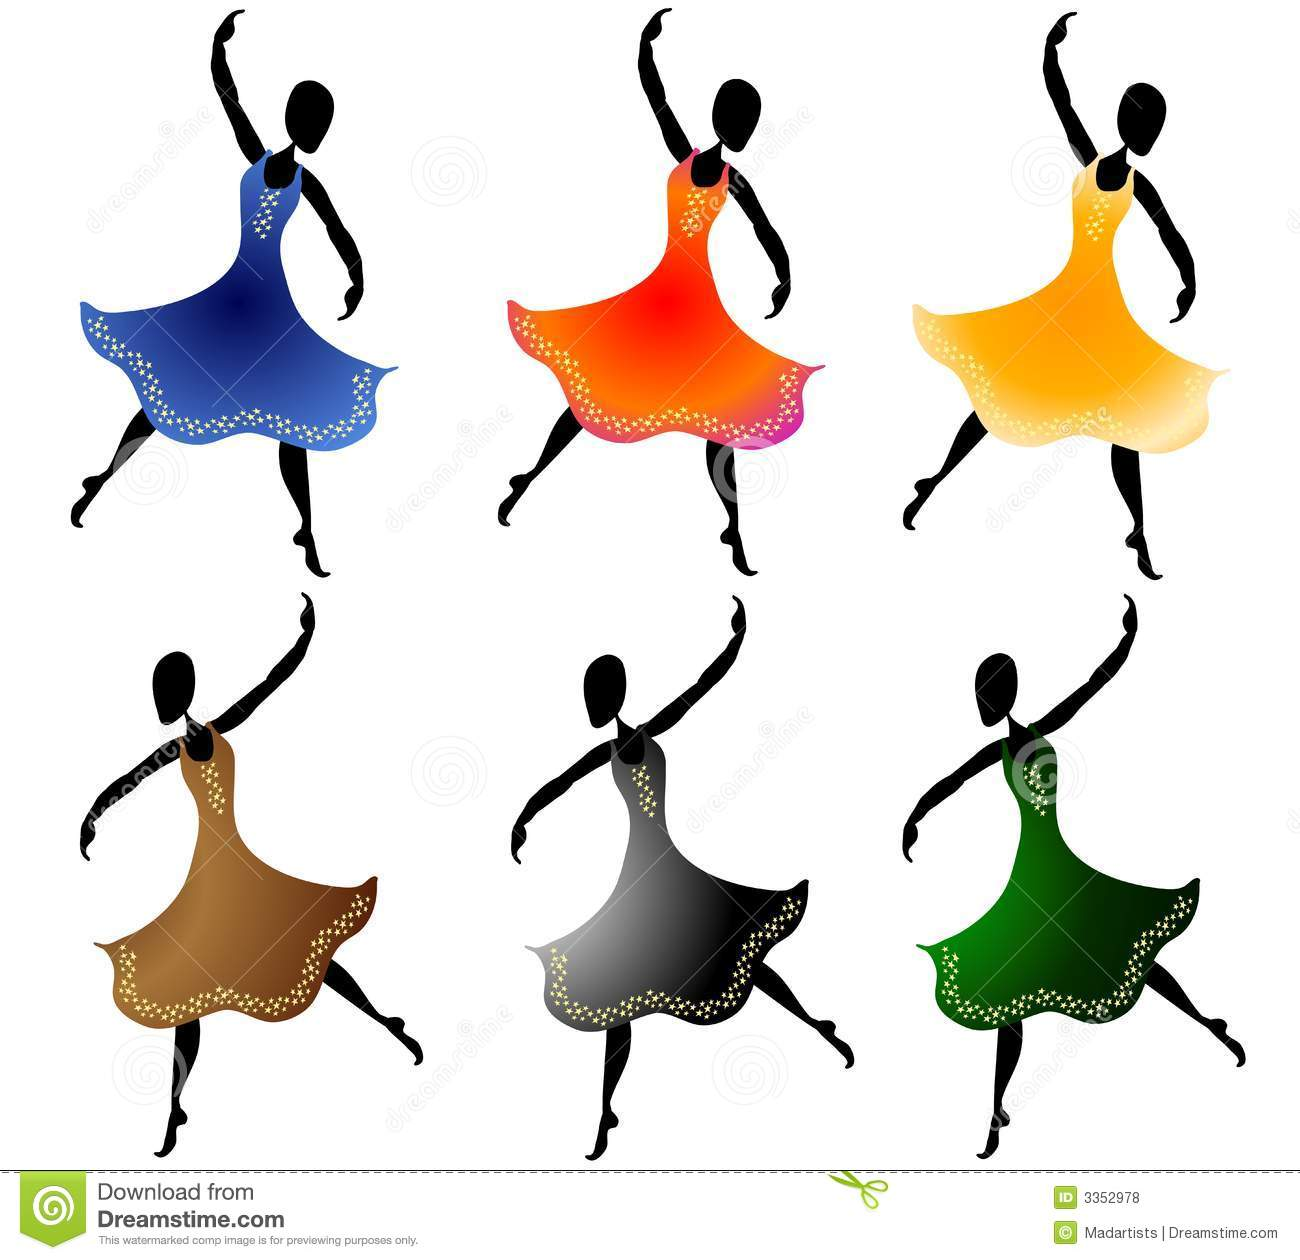 Dancing free clipart image black and white Dancing Clipart | Clipart Panda - Free Clipart Images image black and white